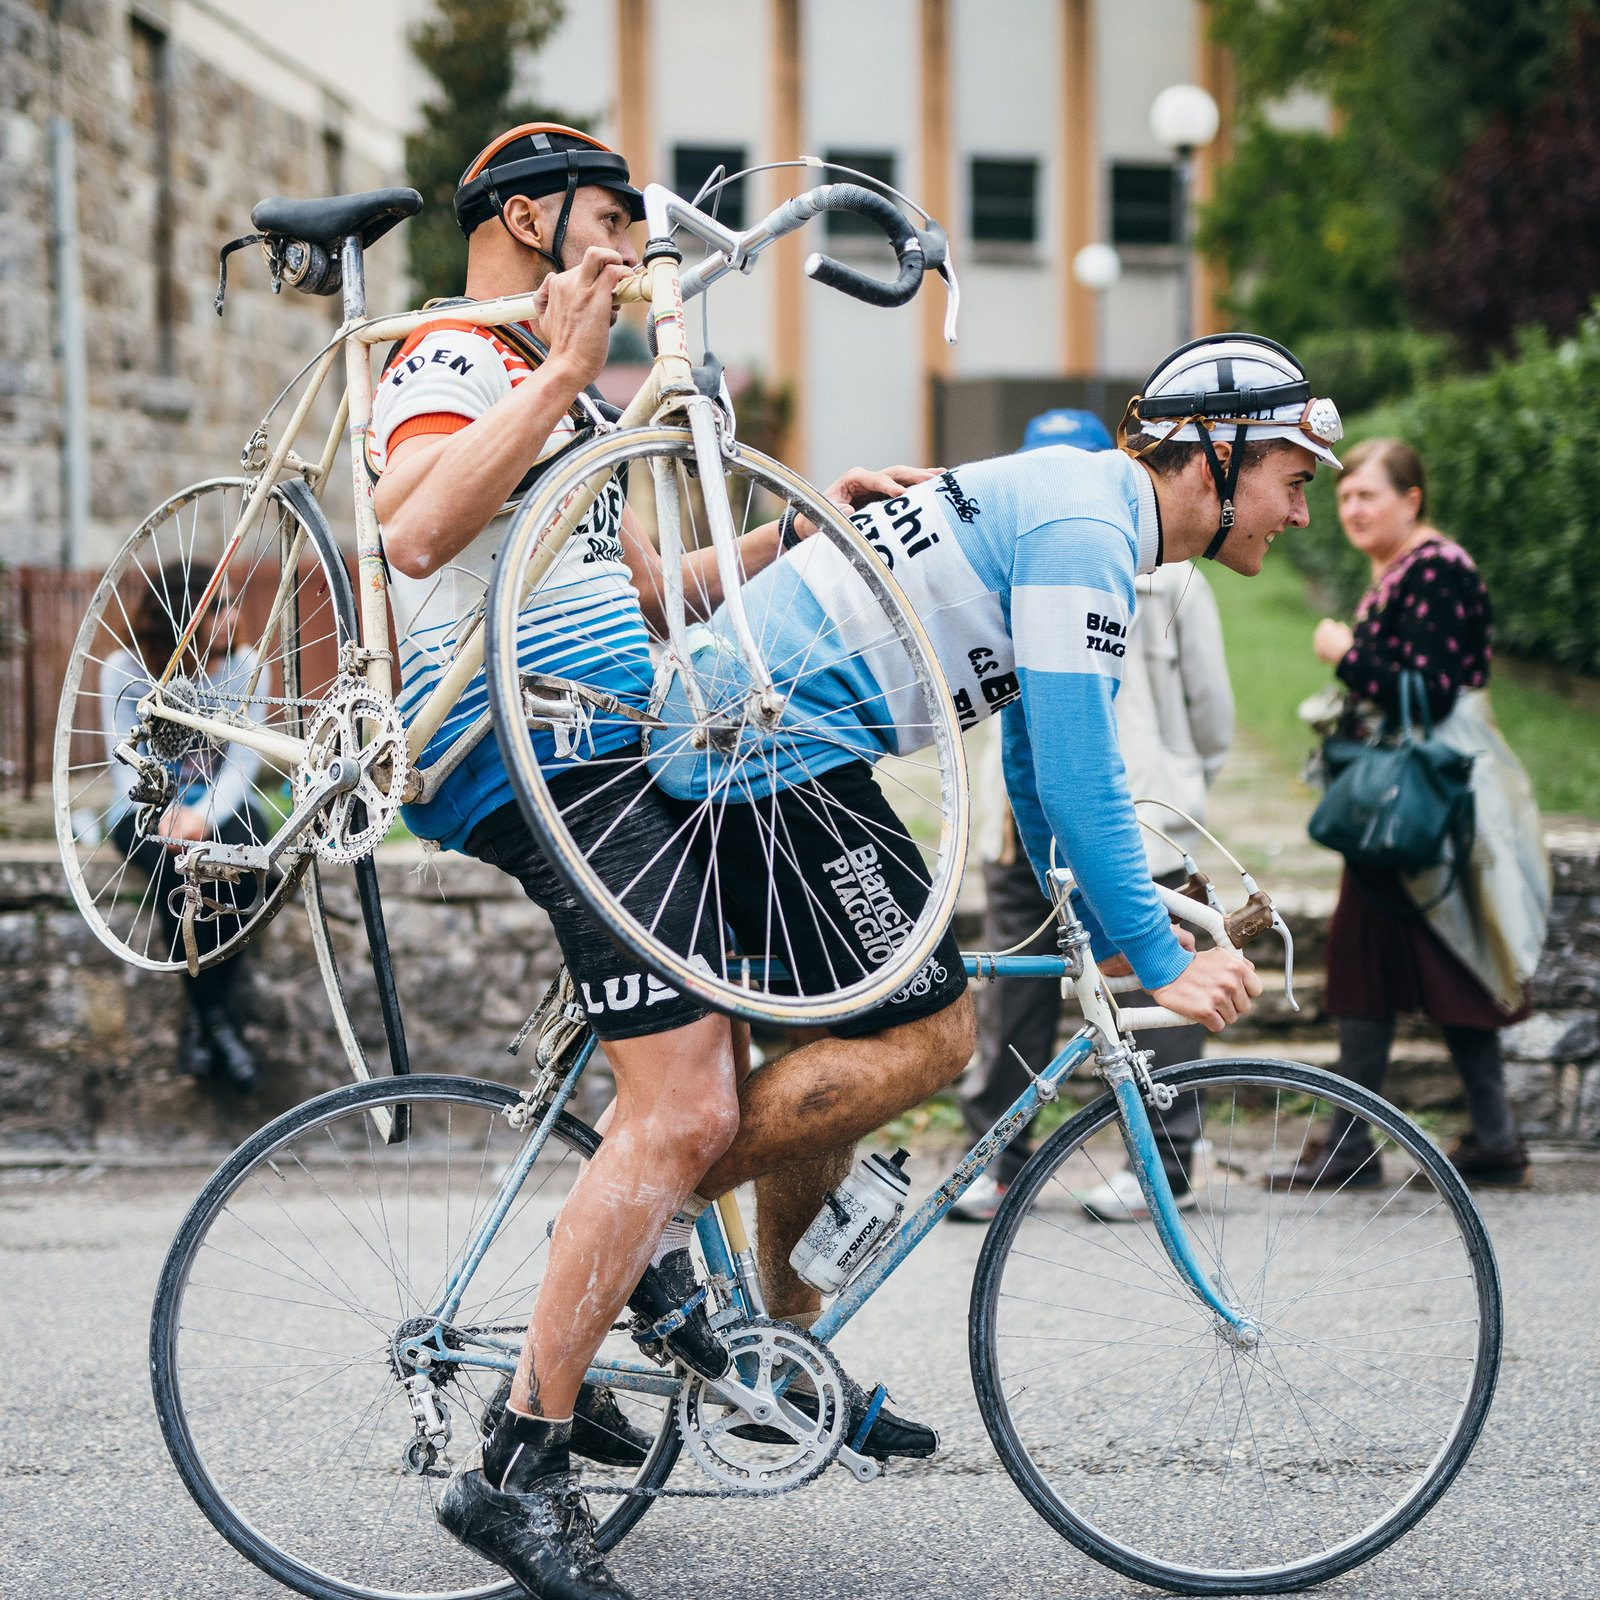 No rider left behind – the camaraderie of the road is a big part of what makes L'Eroica so special.